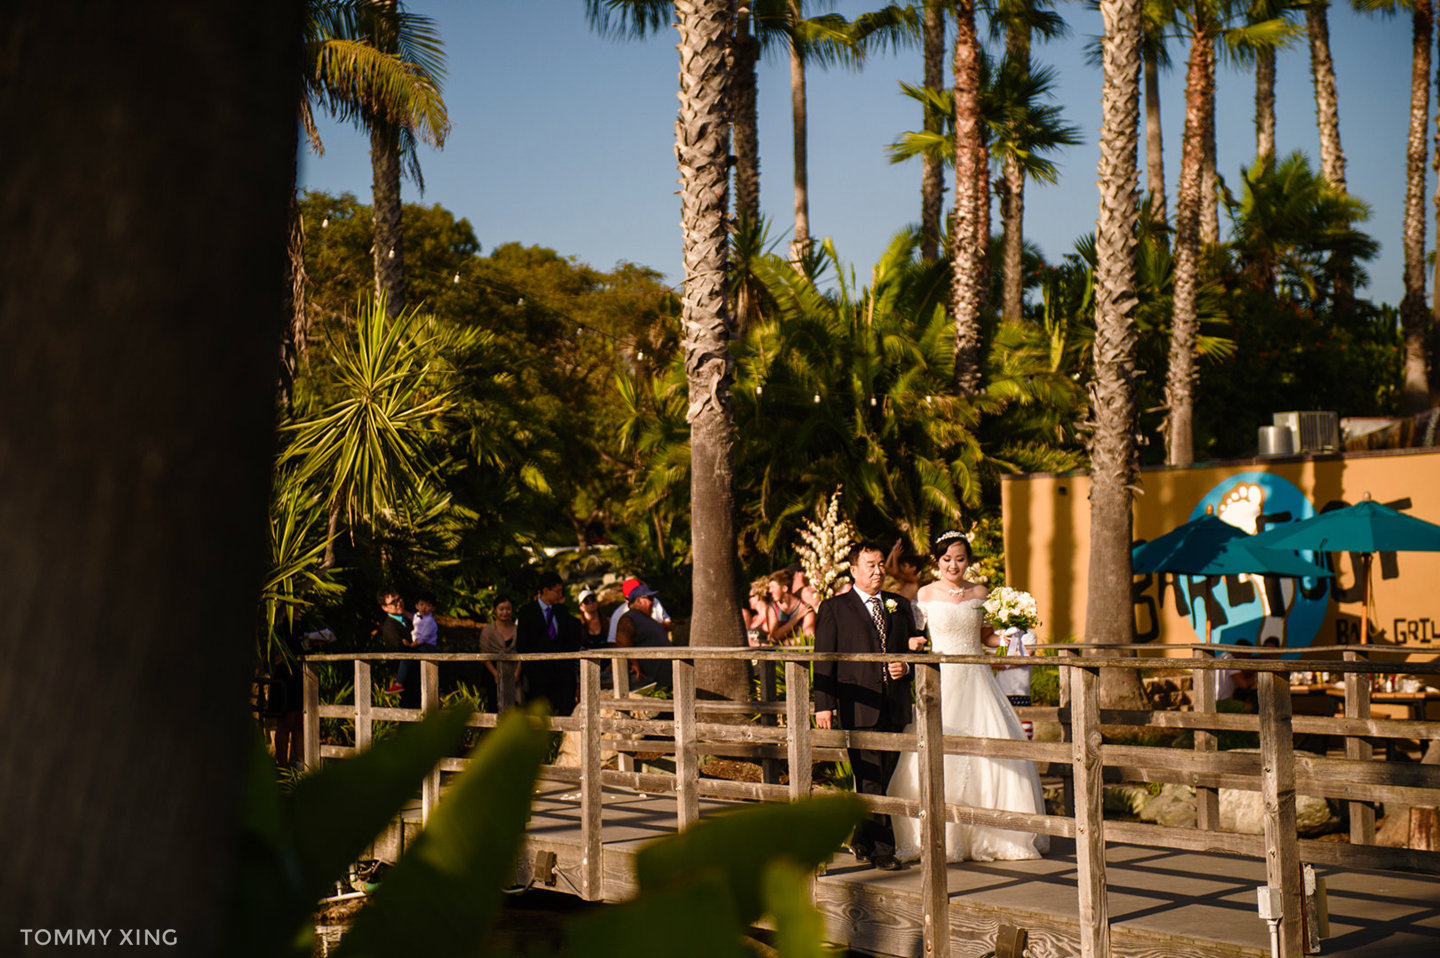 Paradise Point Resort Wedding Xiaolu & Bin San Diego 圣地亚哥婚礼摄影跟拍 Tommy Xing Photography 洛杉矶婚礼婚纱照摄影师 104.jpg